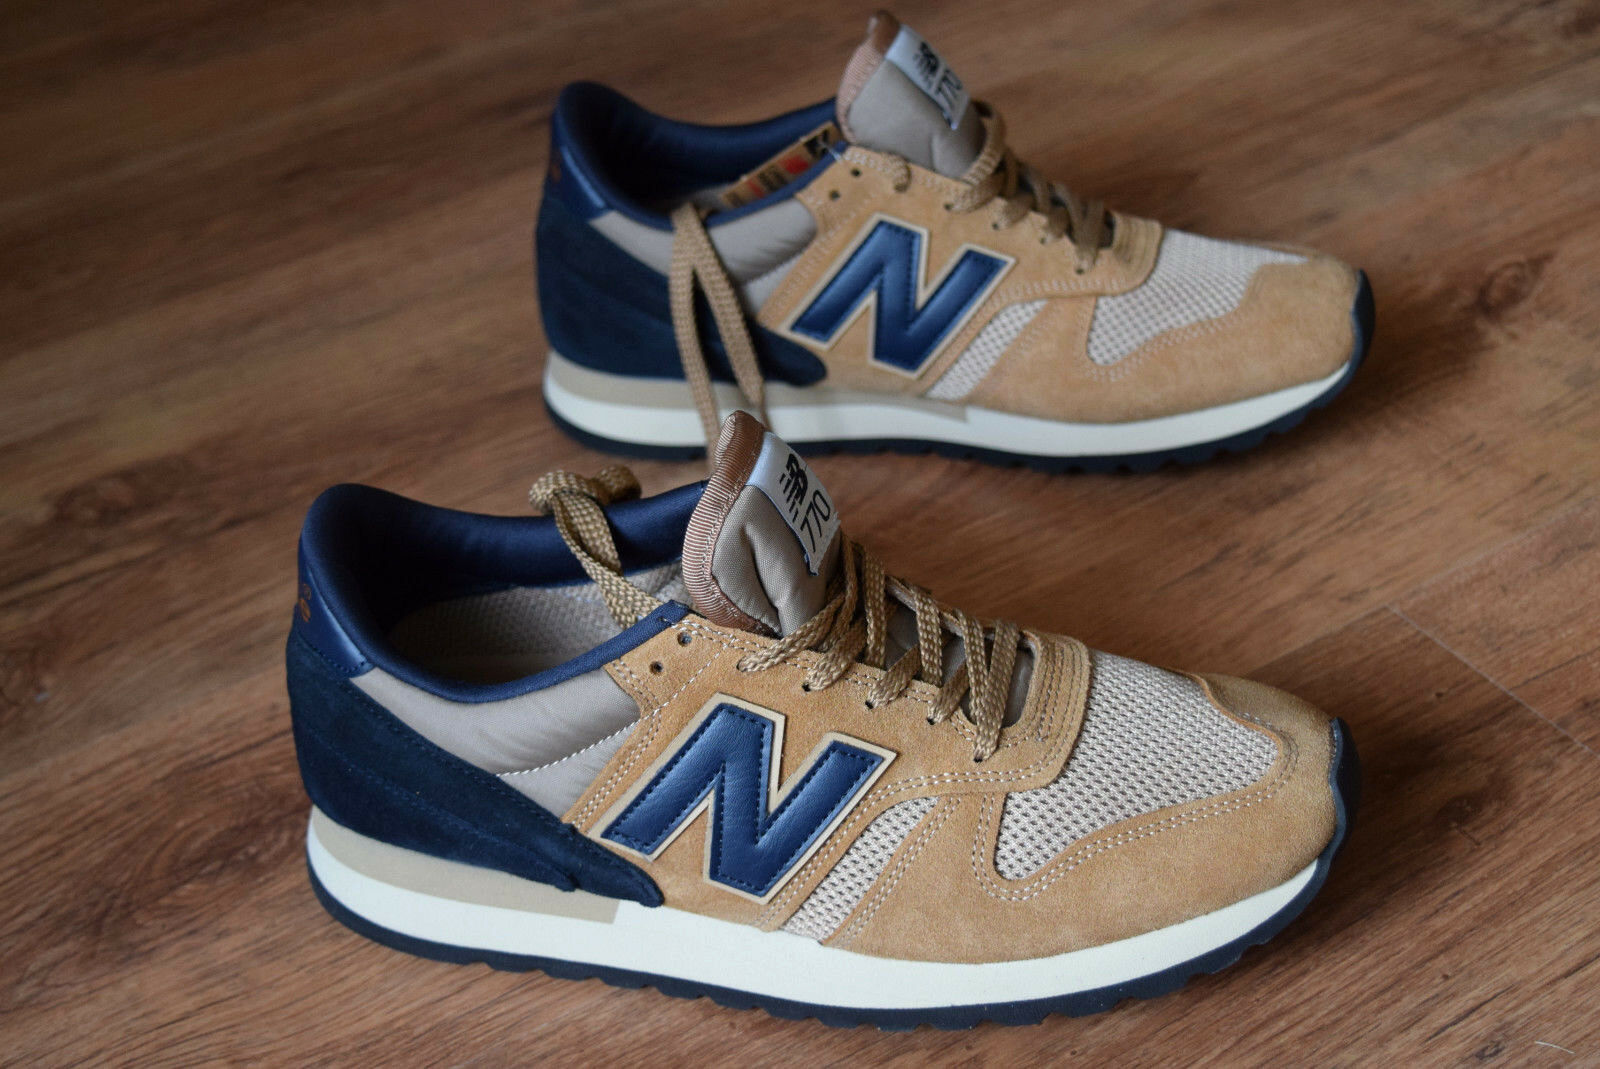 New Balance M 770 SBN 40 40,5 41,5 42 43 44 Made in England Classic 576 M770SBN